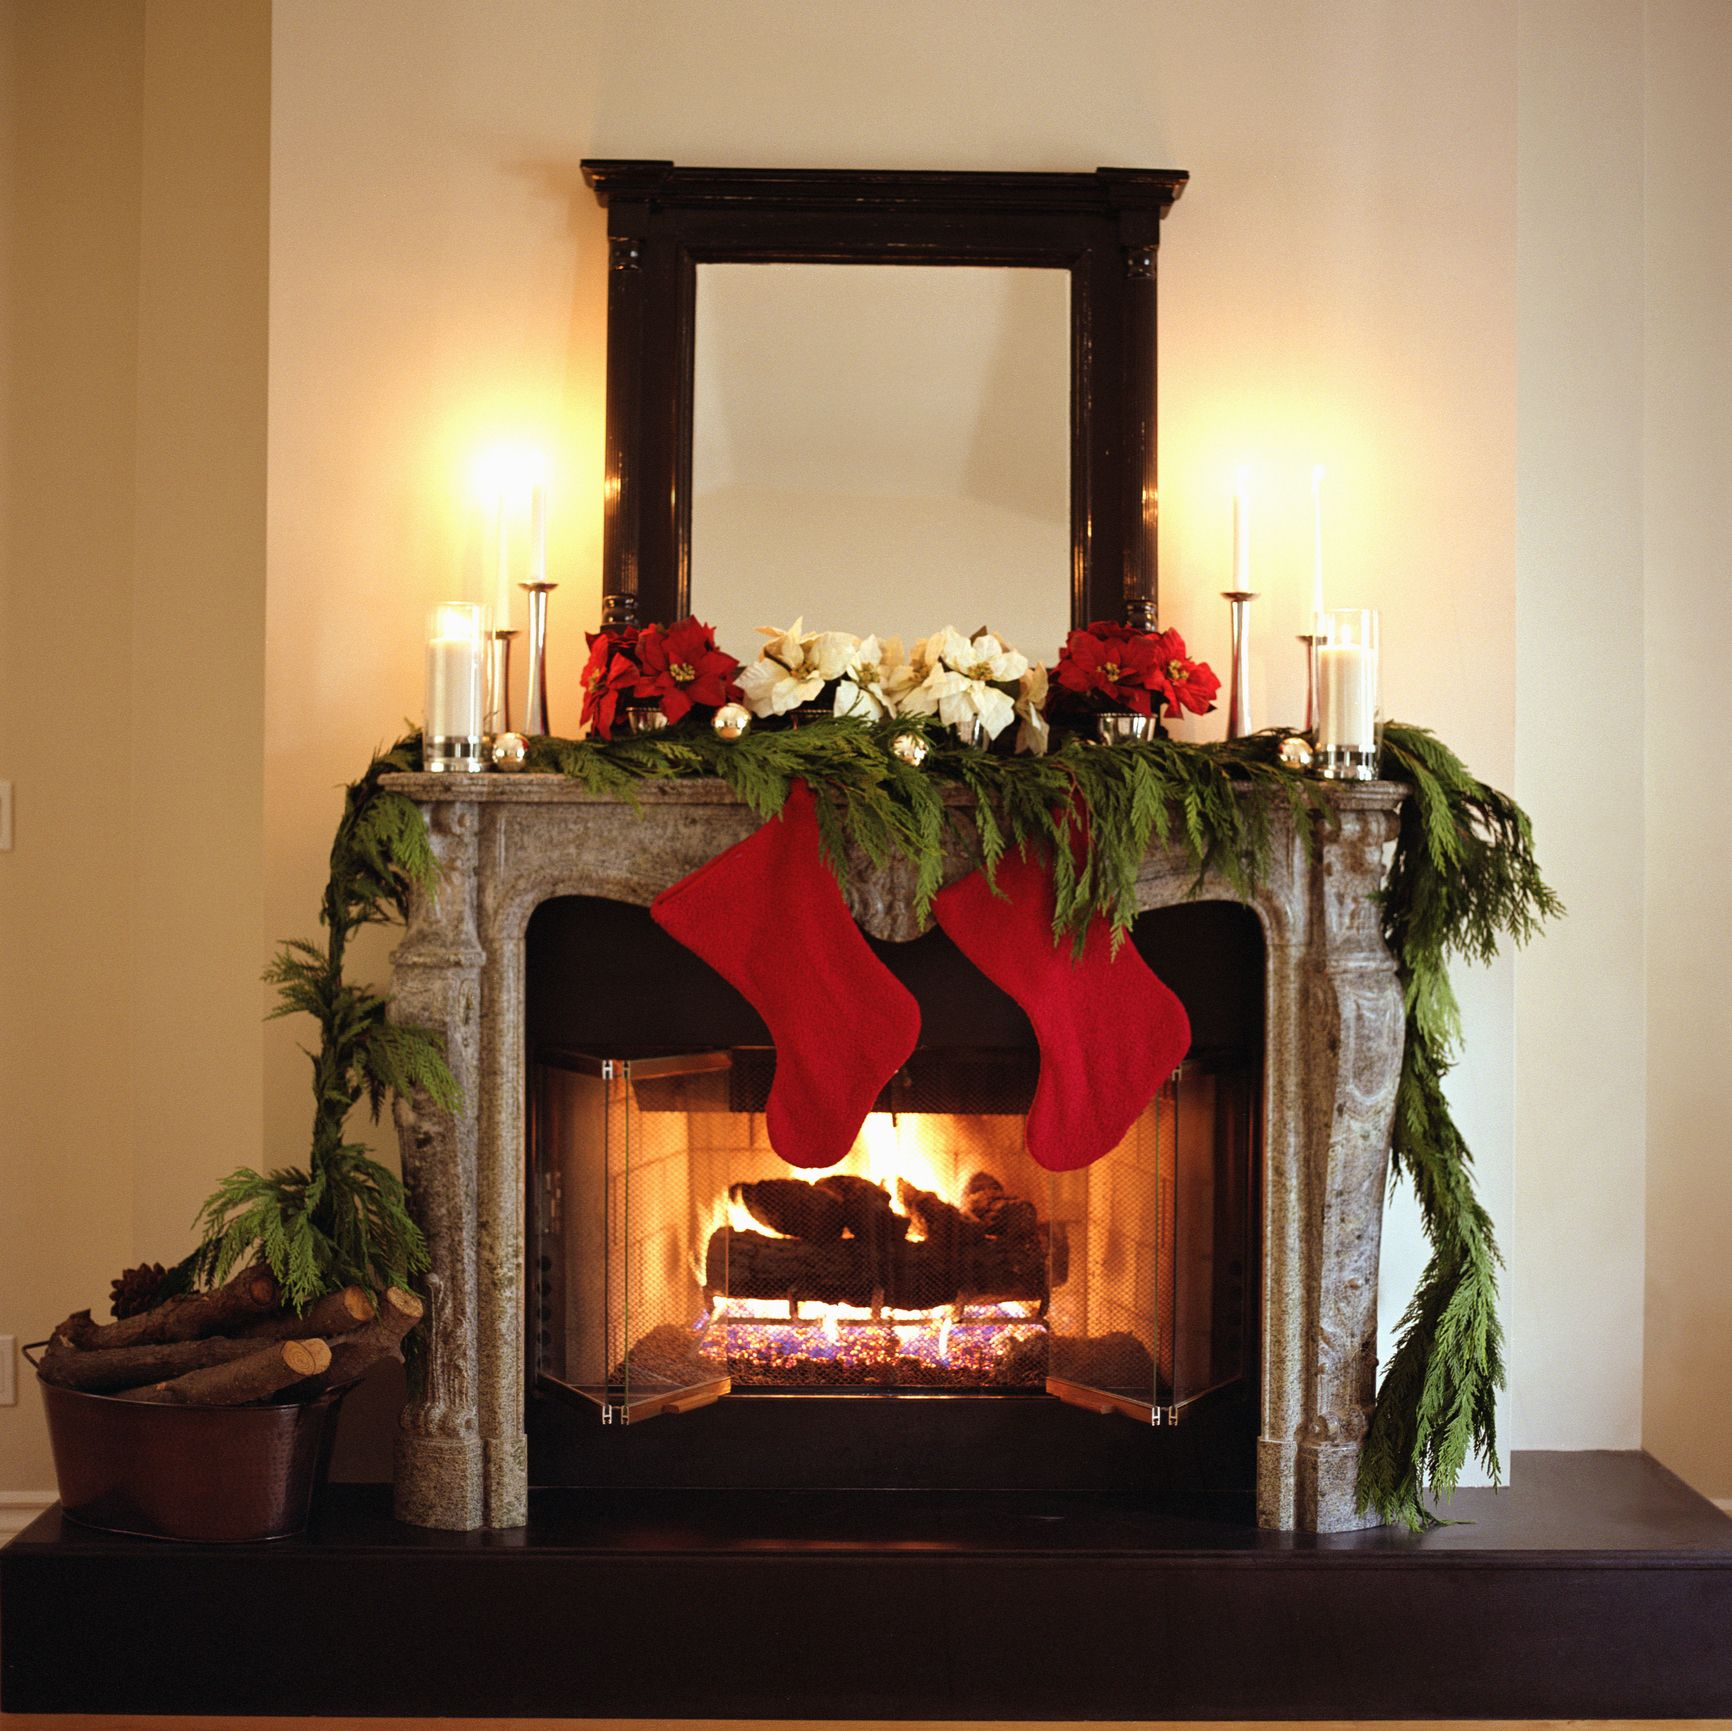 Awesome 25 Christmas Mantel Decor Ideas Fireplace Holiday Decorations Download Free Architecture Designs Embacsunscenecom